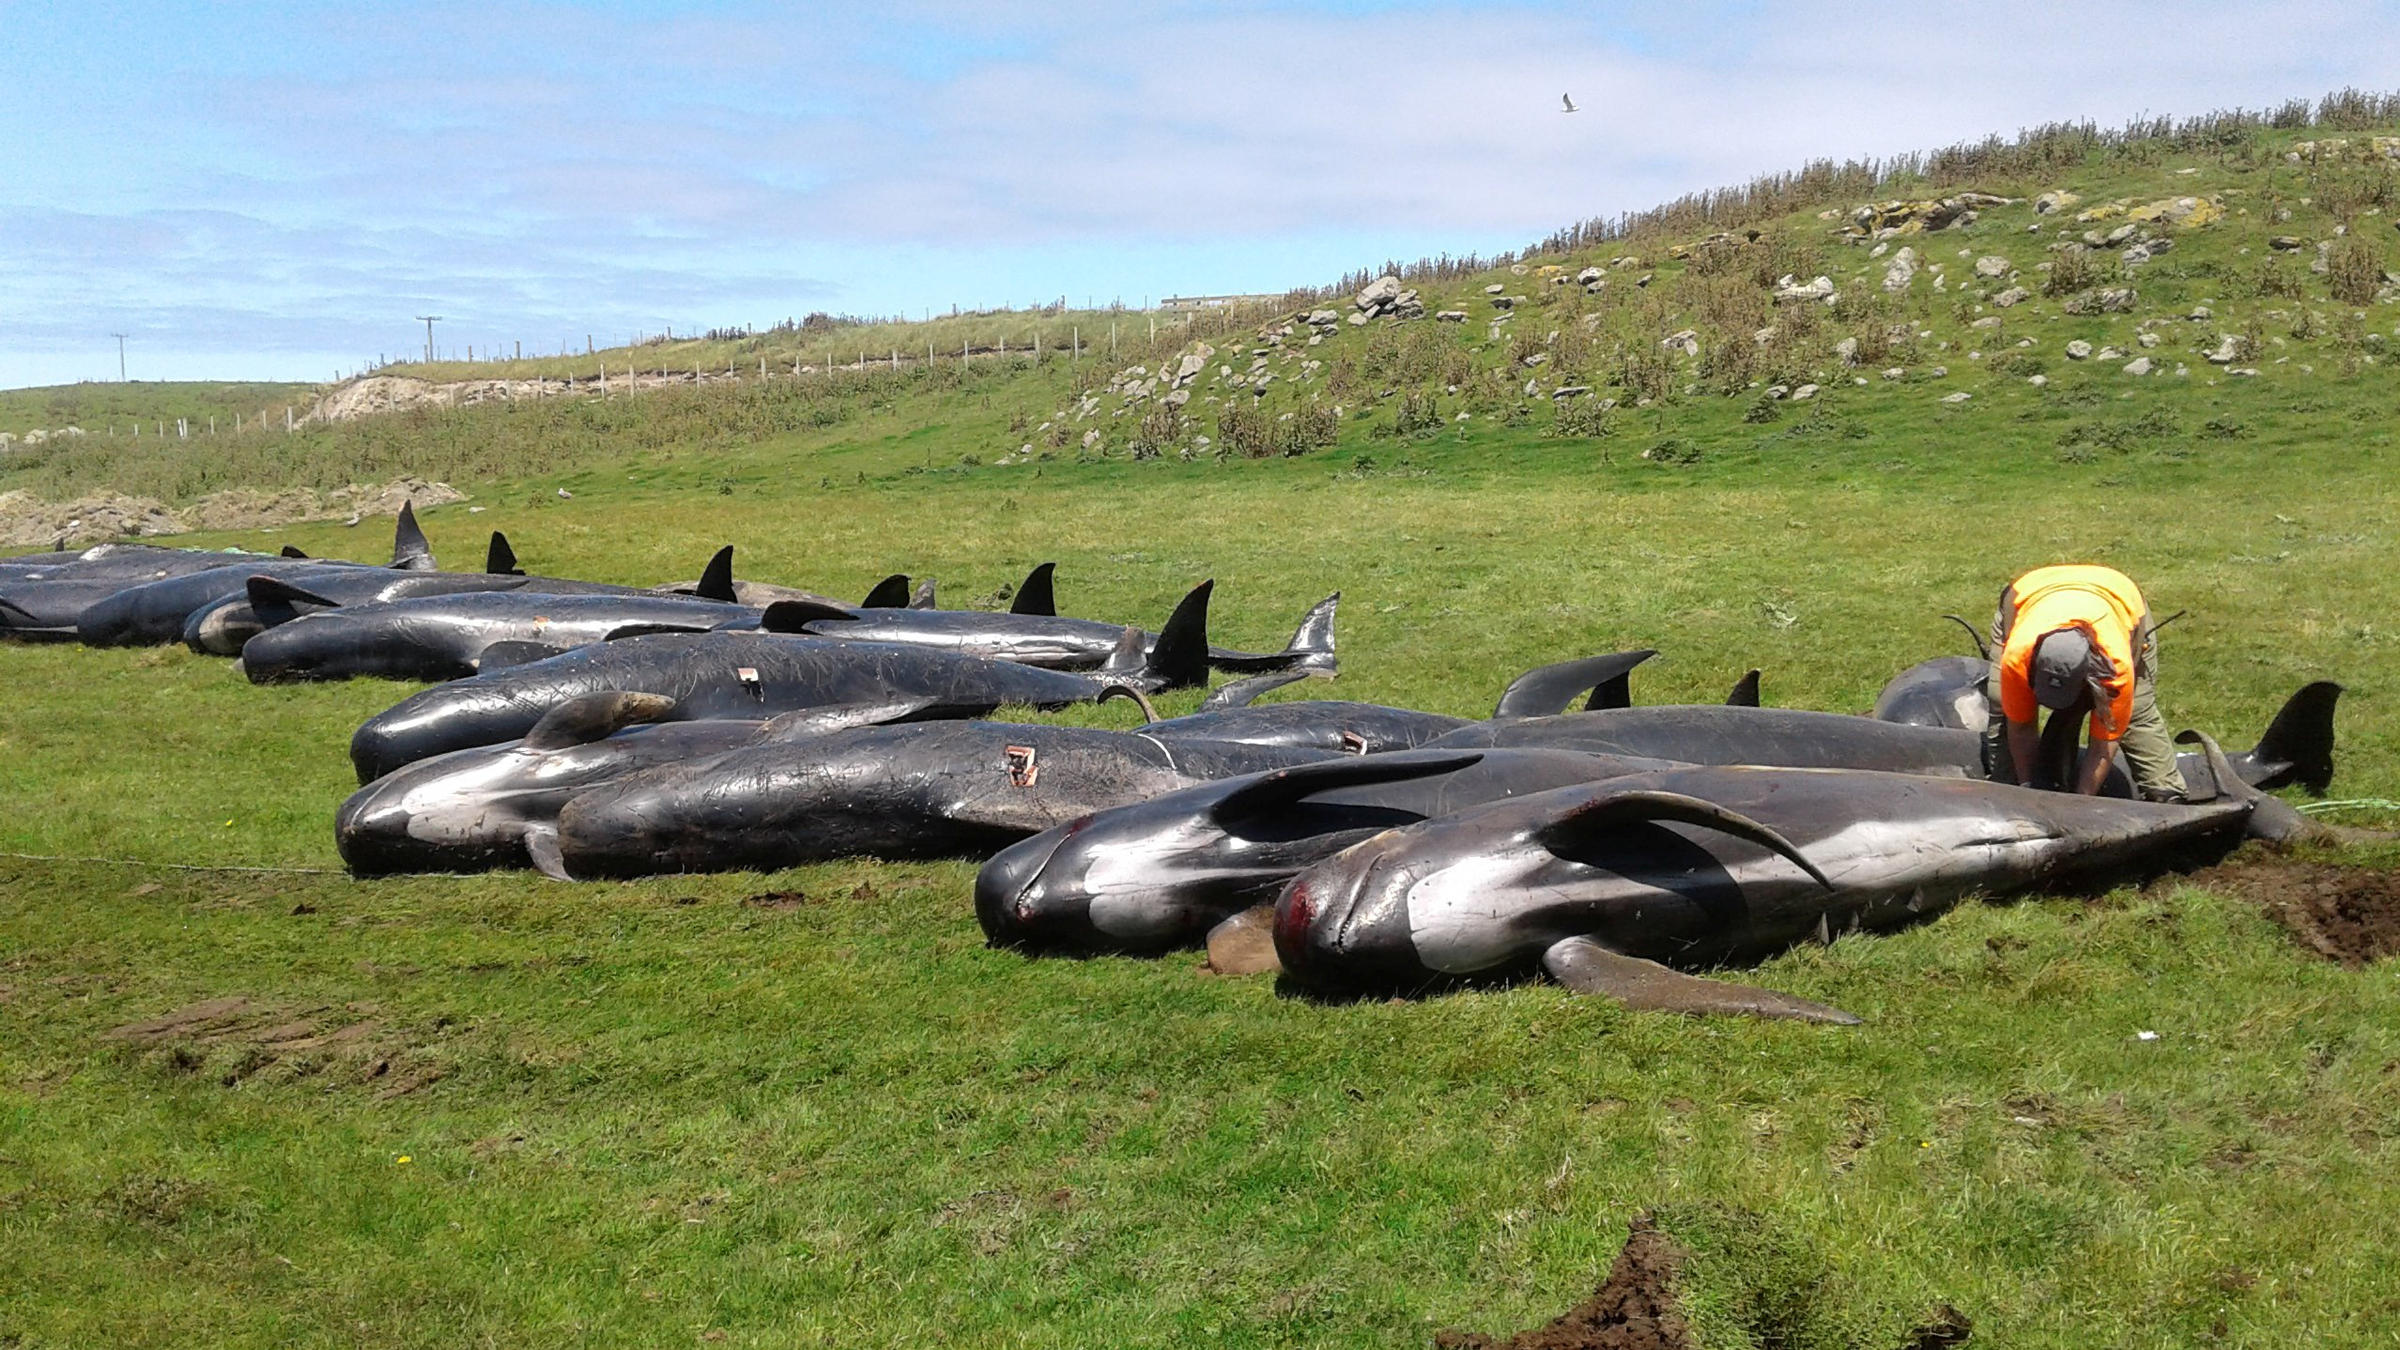 More than 50 whales dead after another mass stranding